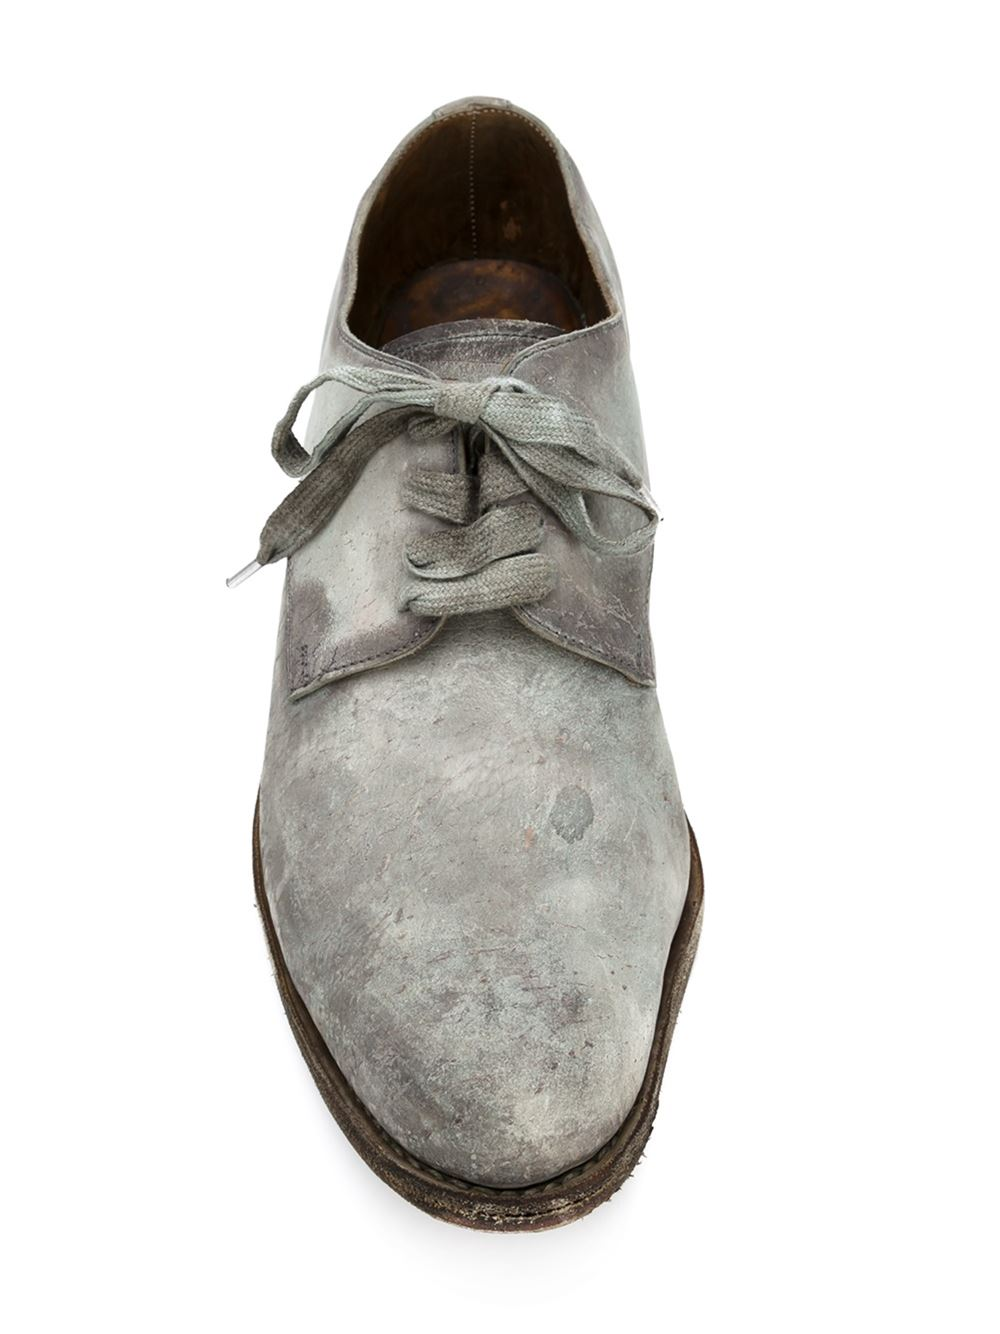 a1923-shoes-farfetch-2